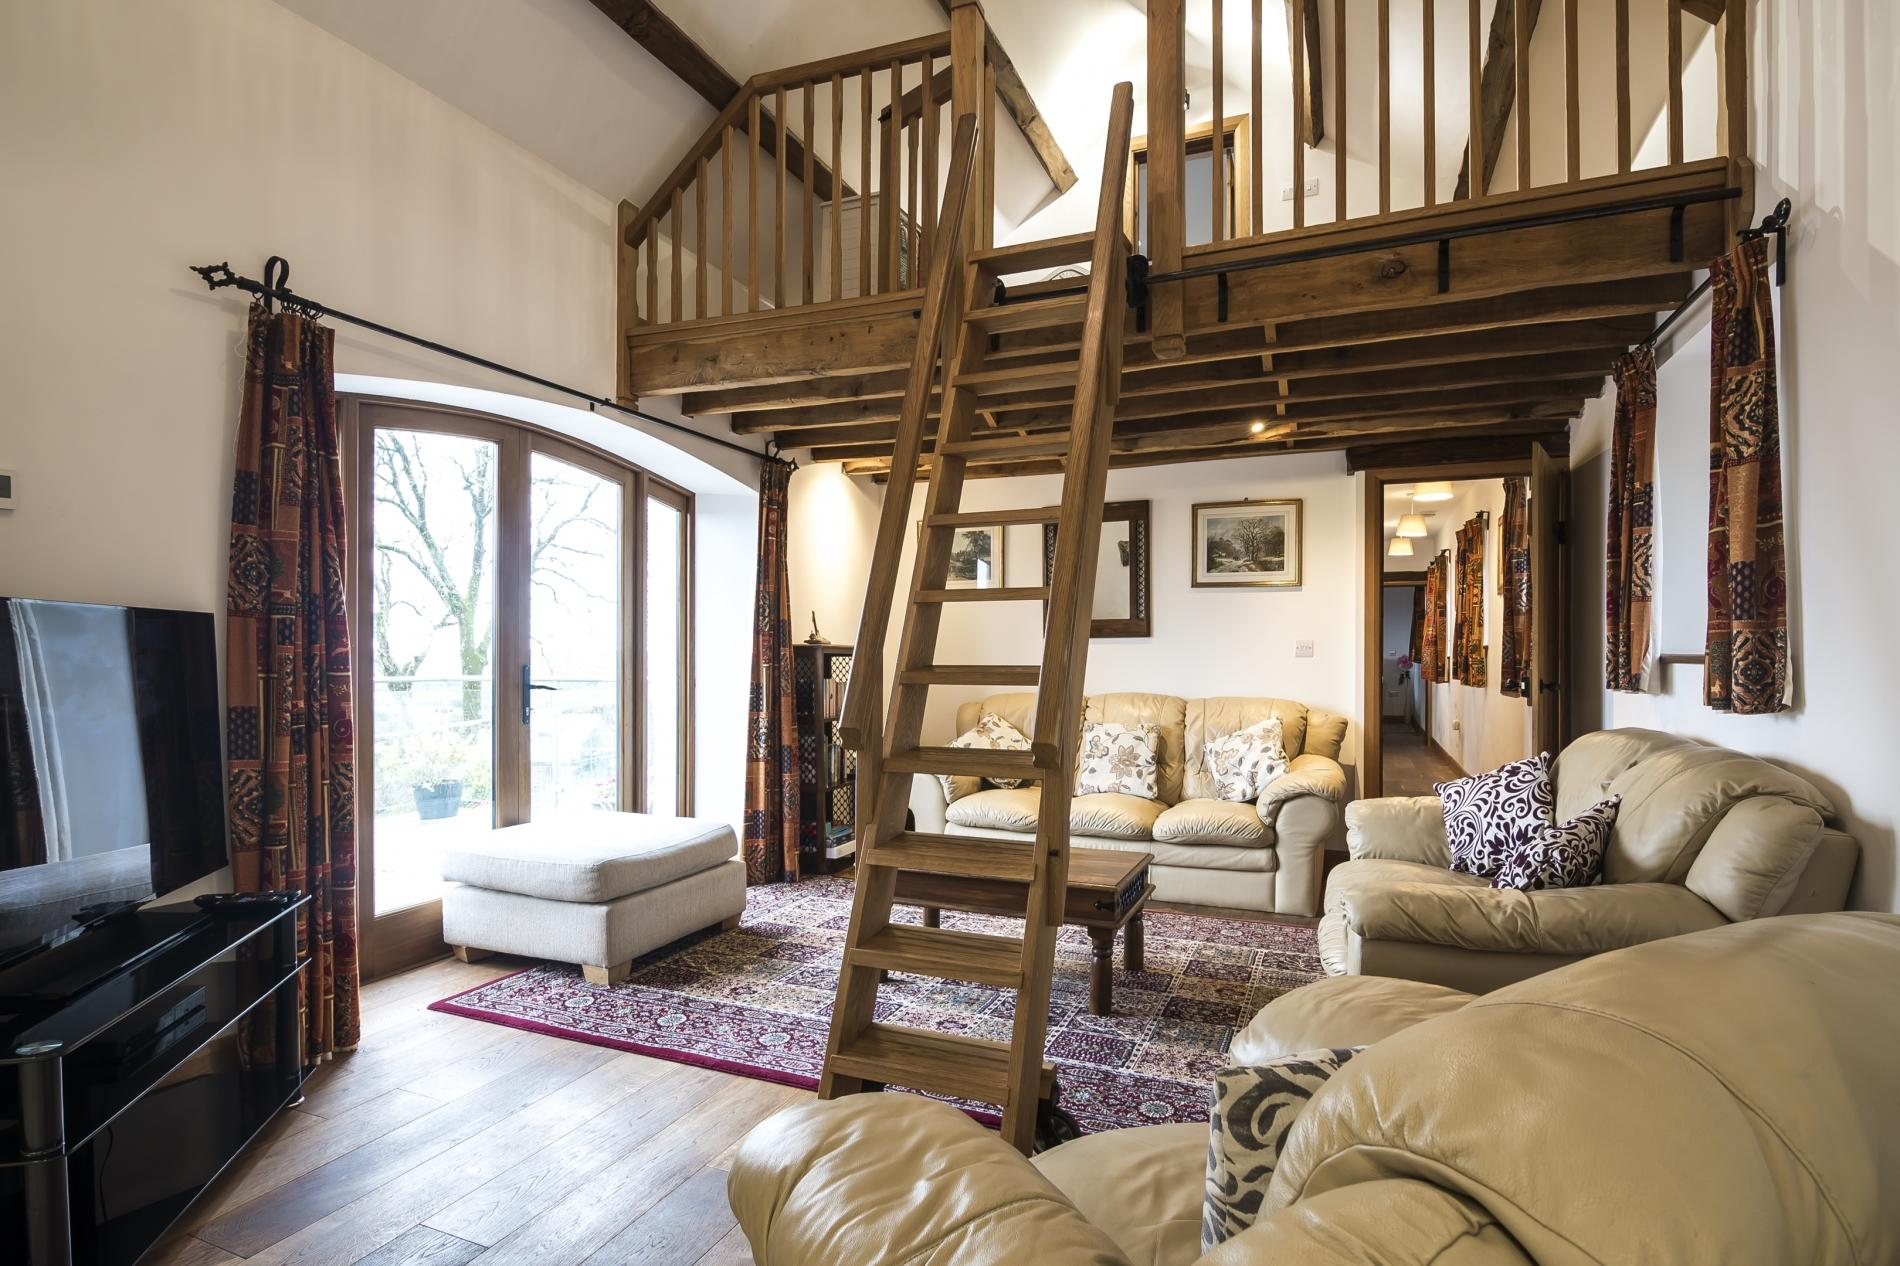 Orchard Cottage - Luxurious Barn Conversion - Beavers Hill 0